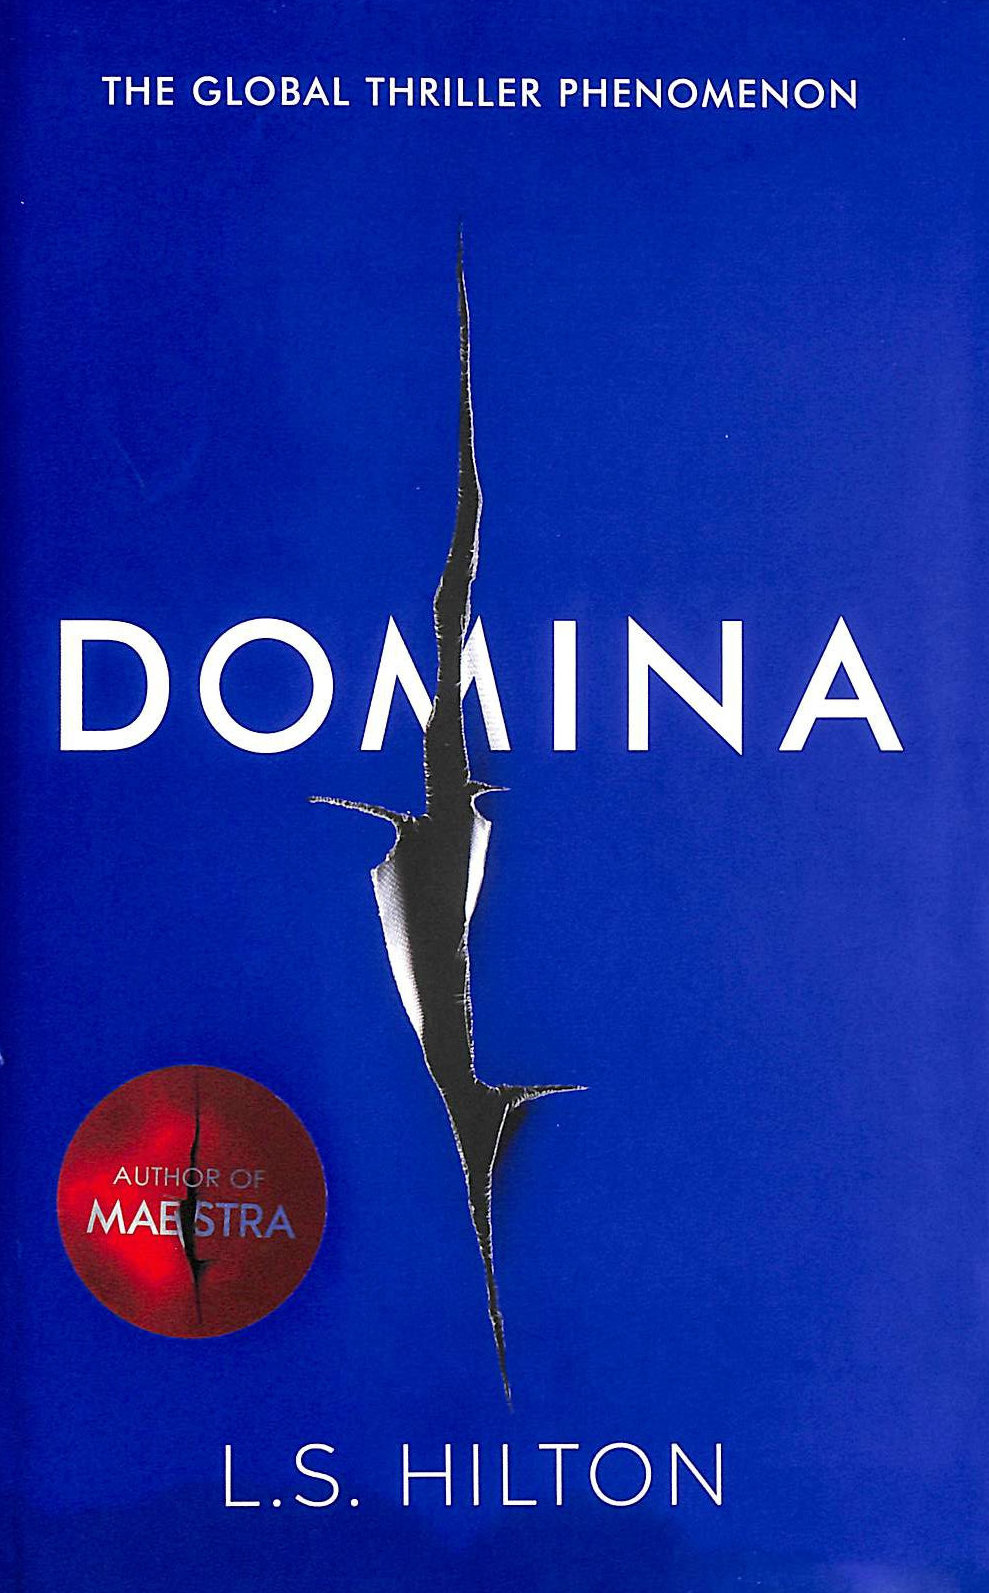 Image for Domina: More dangerous. More shocking. The thrilling new bestseller from the author of MAESTRA (Maestra 2)